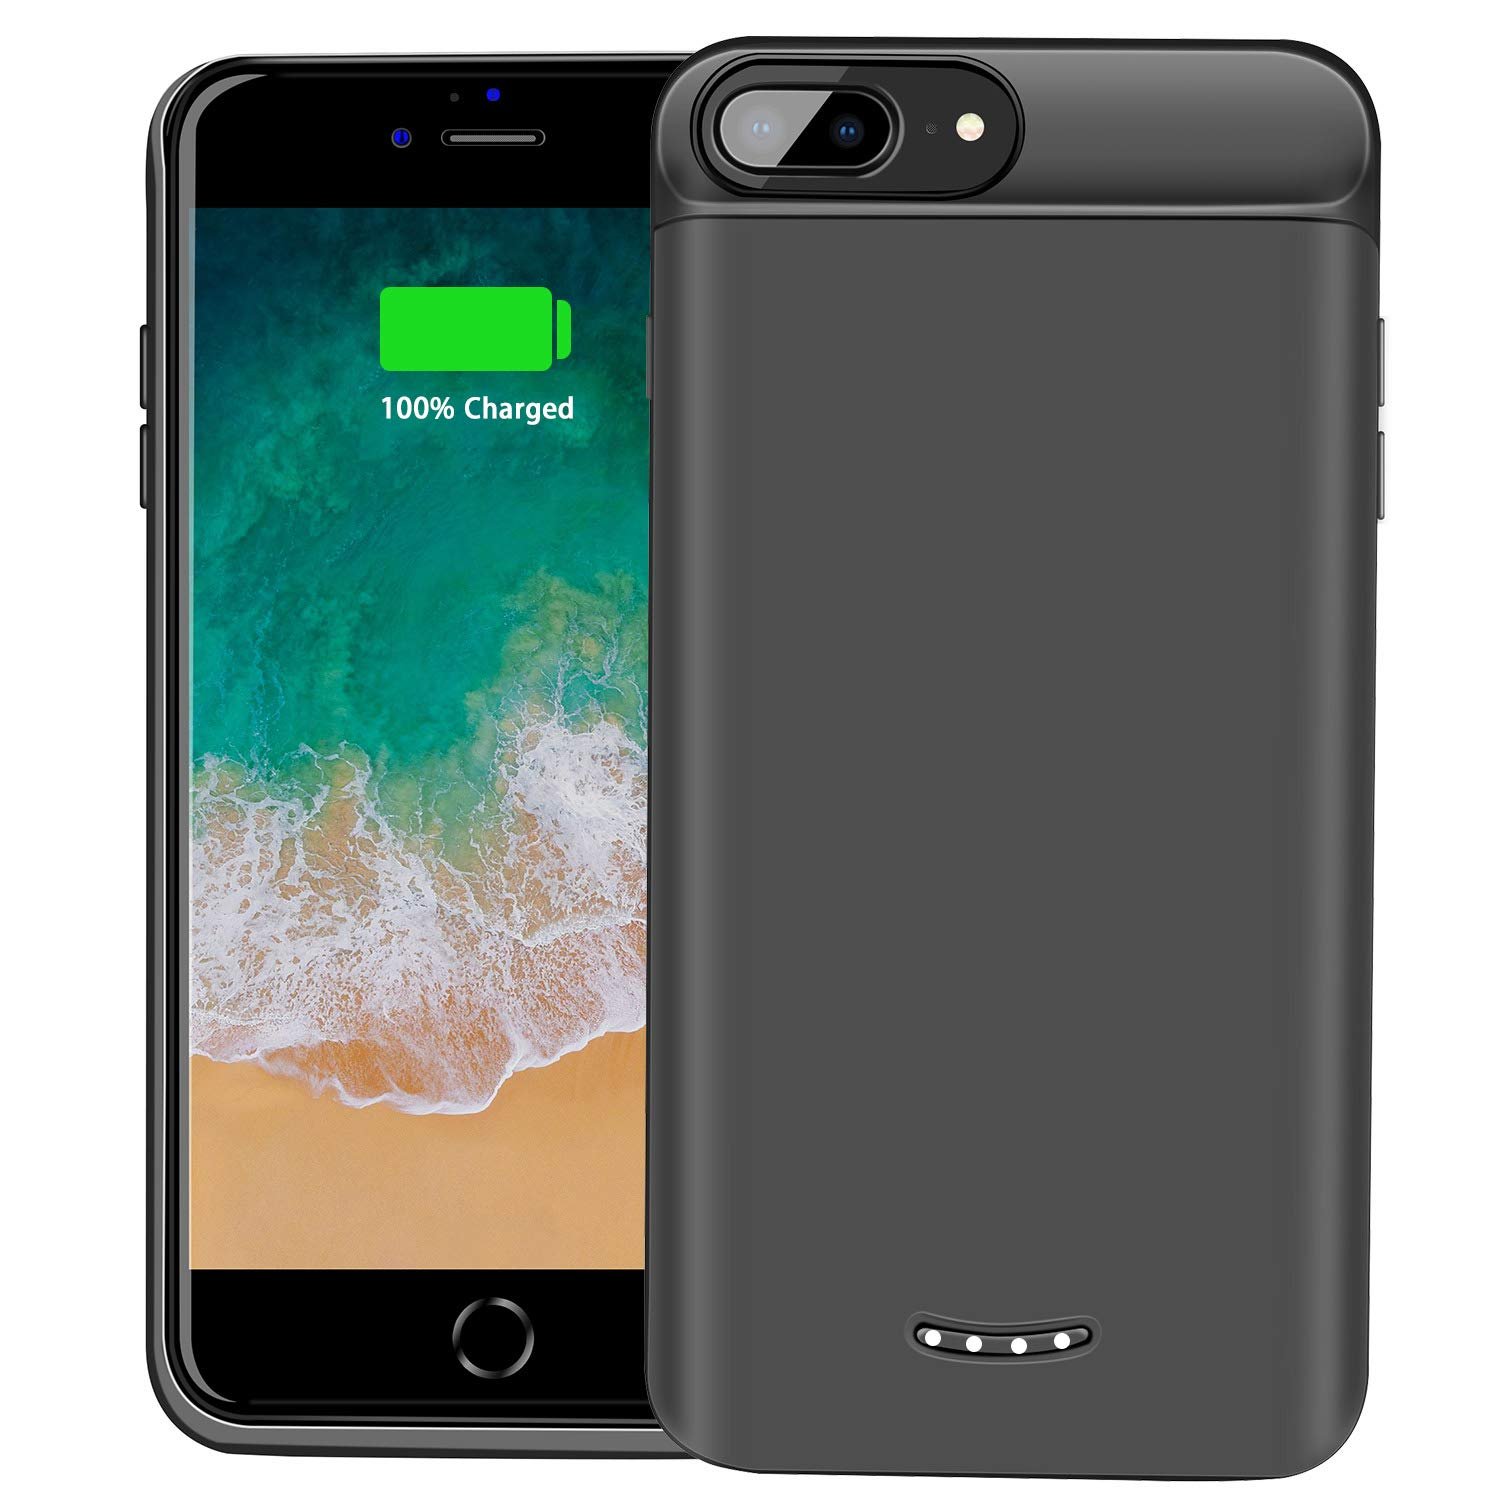 BeeFix Compatible iPhone 8 Plus / 7 Plus Battery Case,7500mAh Portable Charger Case Rechargeable Extended Battery Pack Protective Backup Charging Case for iPhone 8 7 6S 6 Plus 5.5 inch (Black)